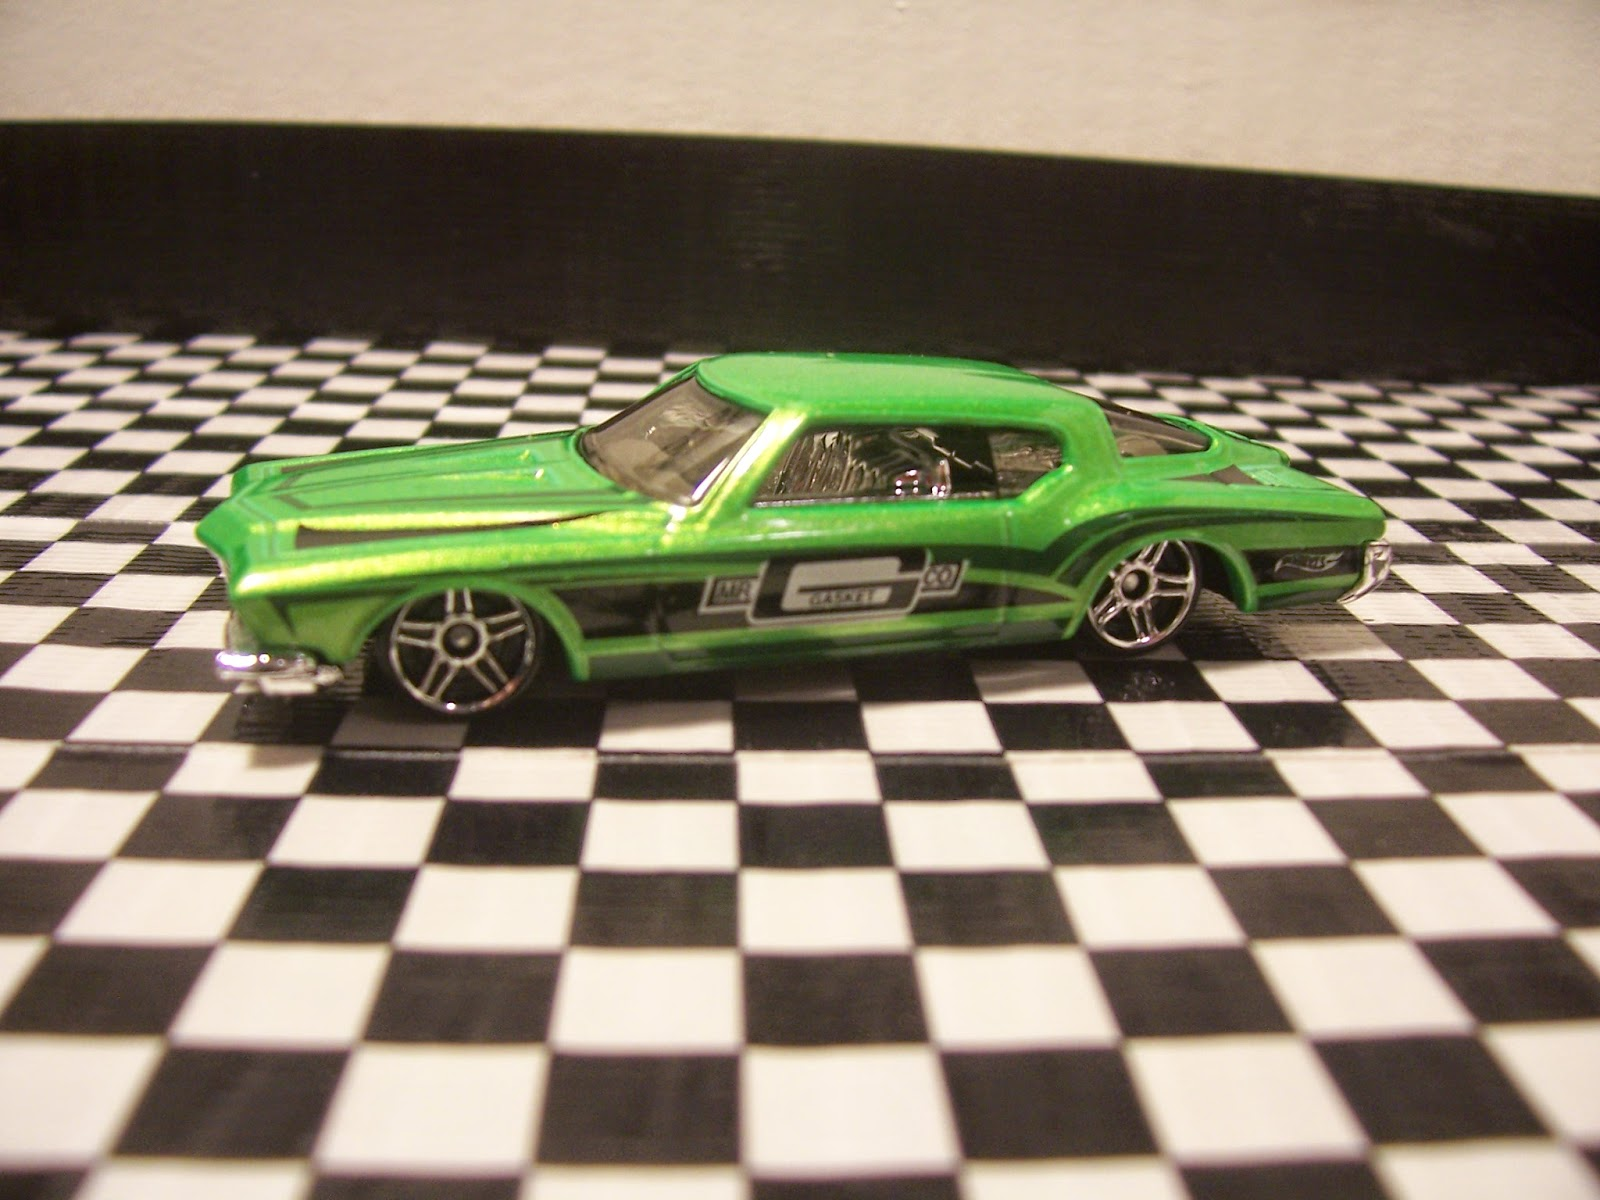 1971 Buick Riviera Hot Wheels The 1971 Buick Riviera is